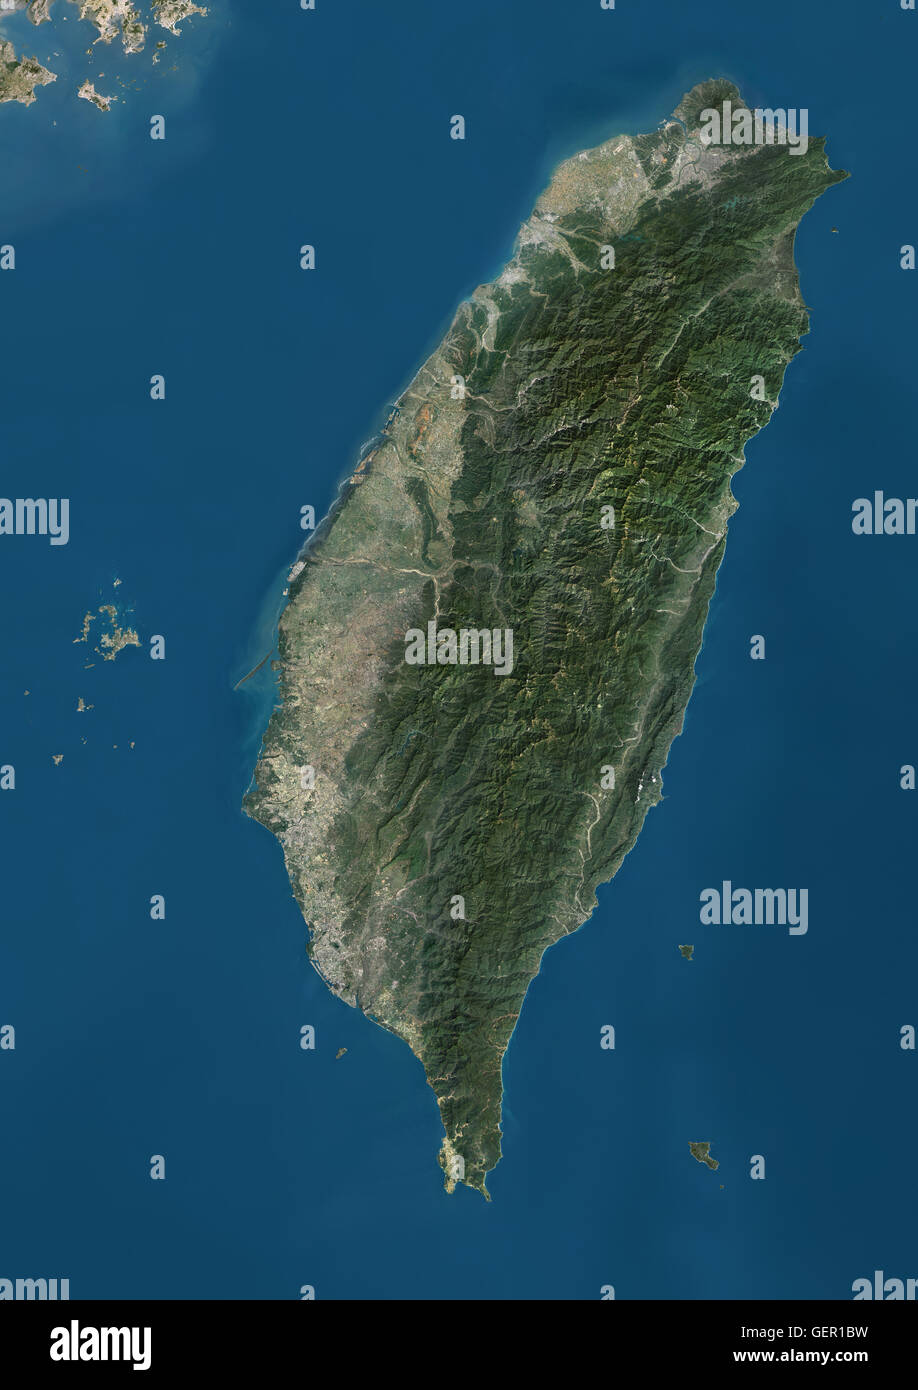 Satellite view of Taiwan. This image was compiled from data acquired by Landsat satellites. - Stock Image